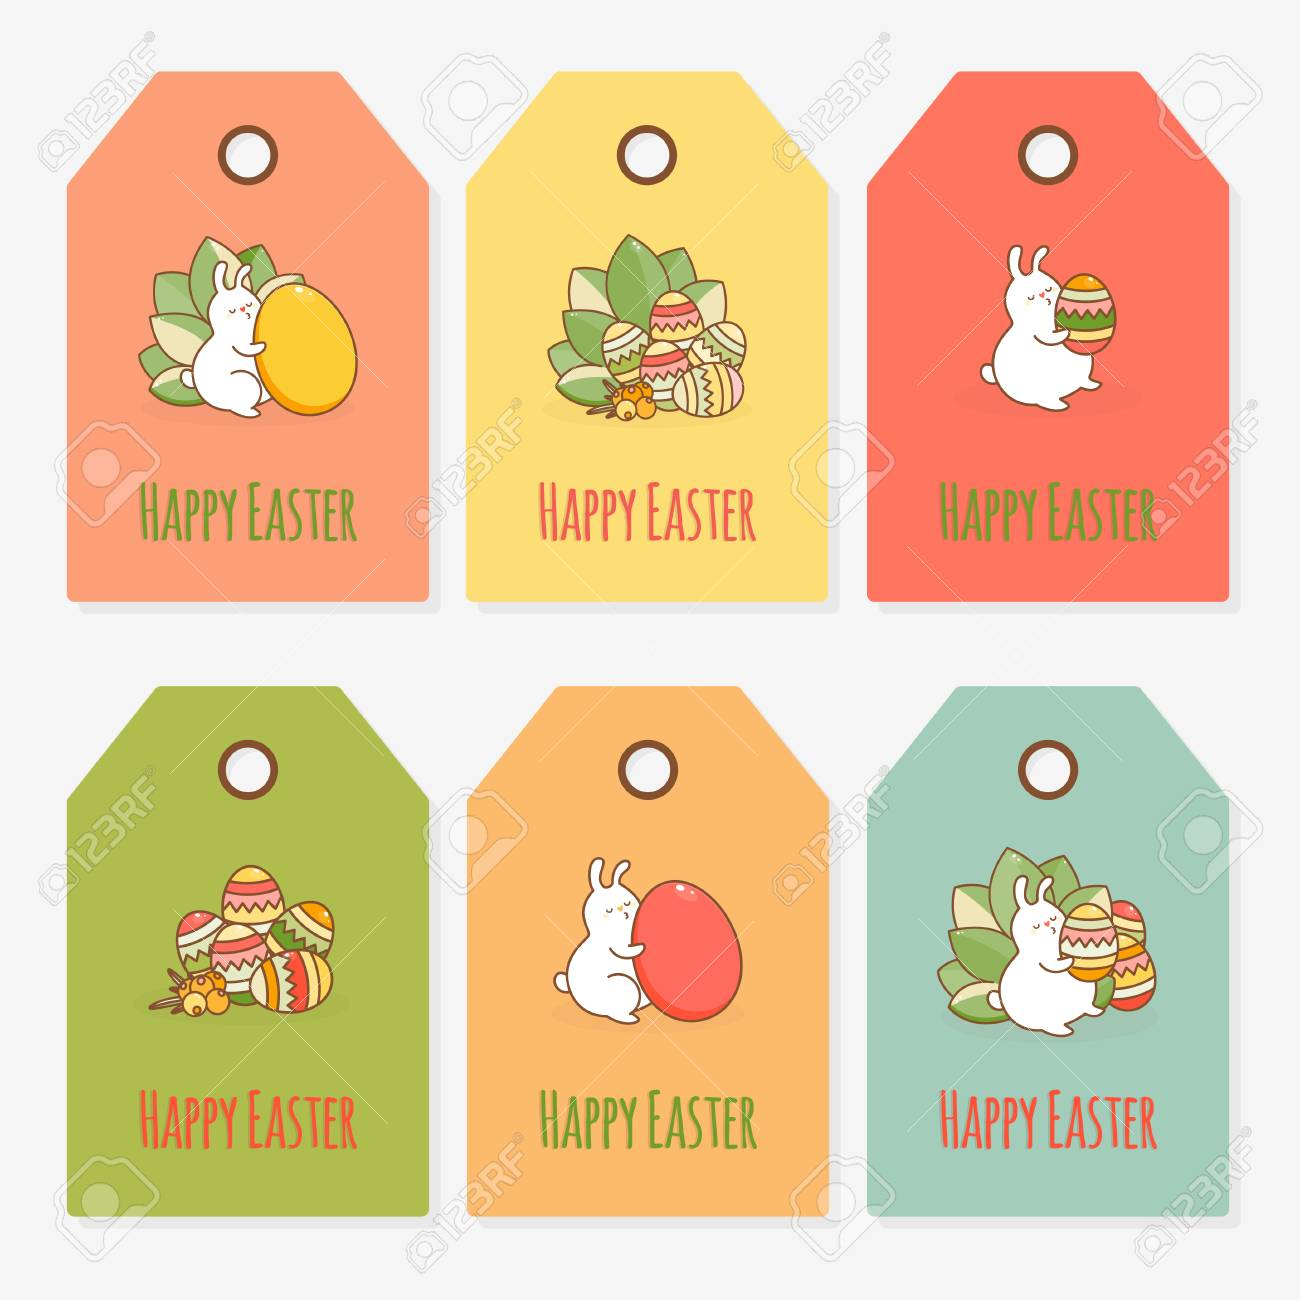 Easter gift tag template vector illustration royalty free cliparts easter gift tag template vector illustration stock vector 75739531 negle Choice Image